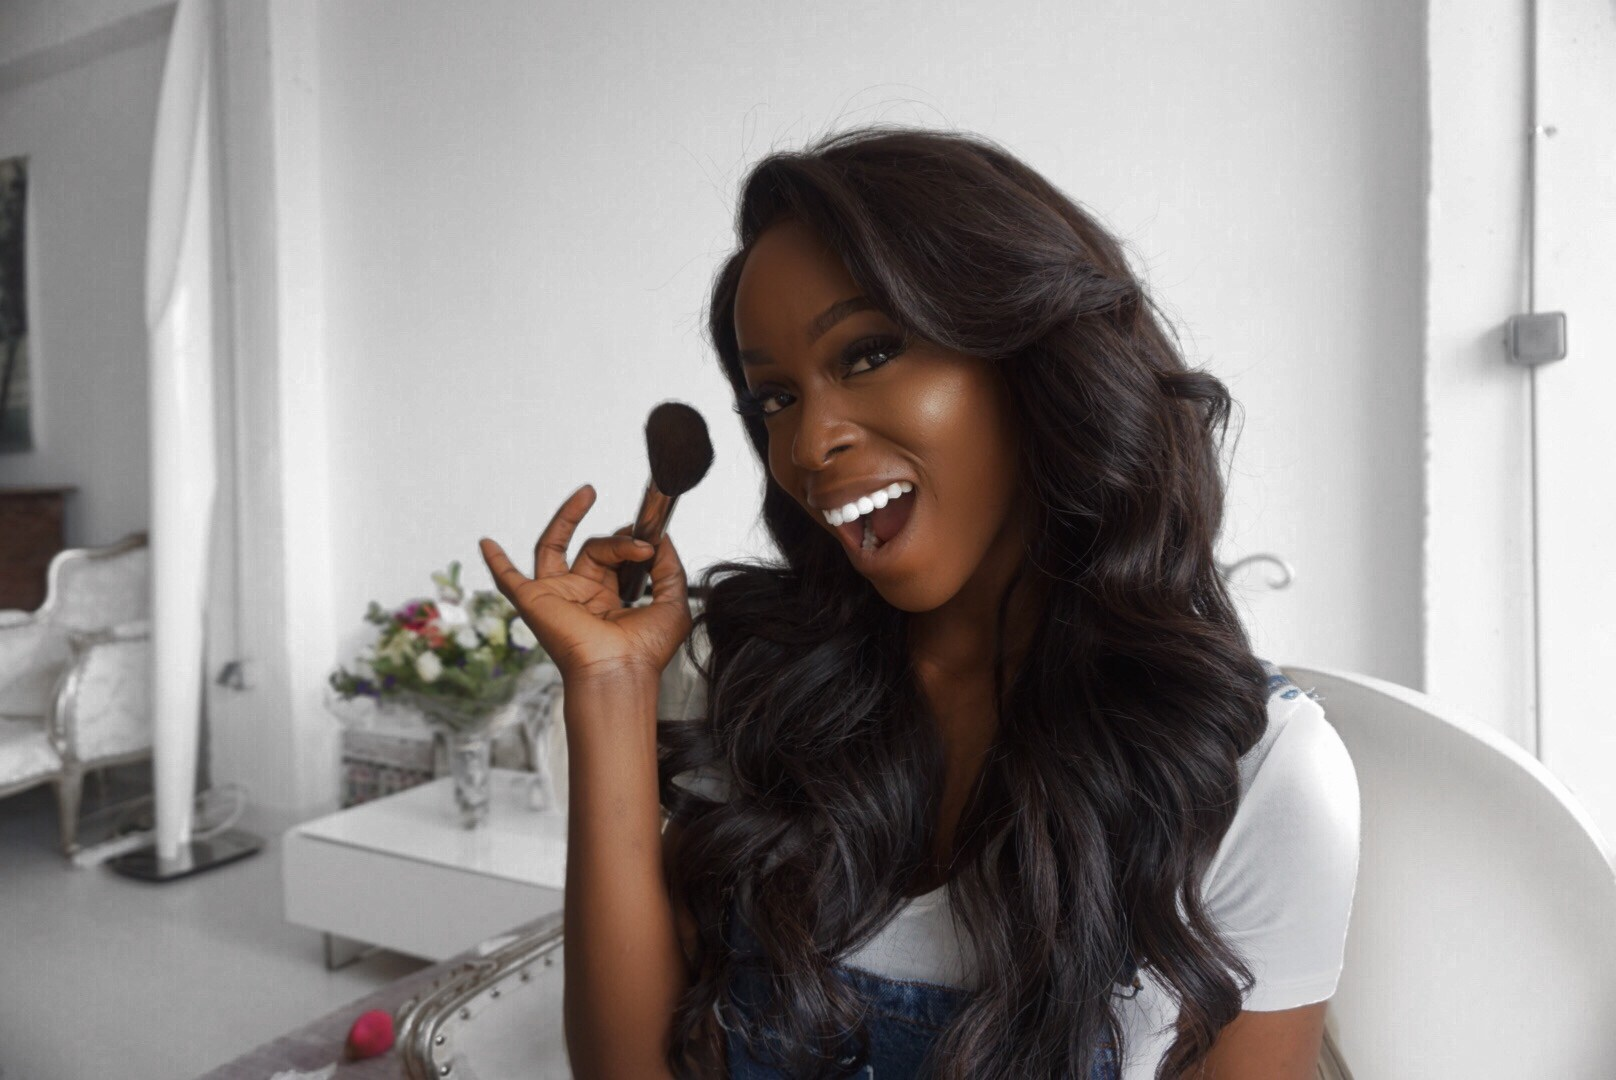 Watch How Melanin Goddess Kehinde Smith Achieves The Chic Messy Hair Look